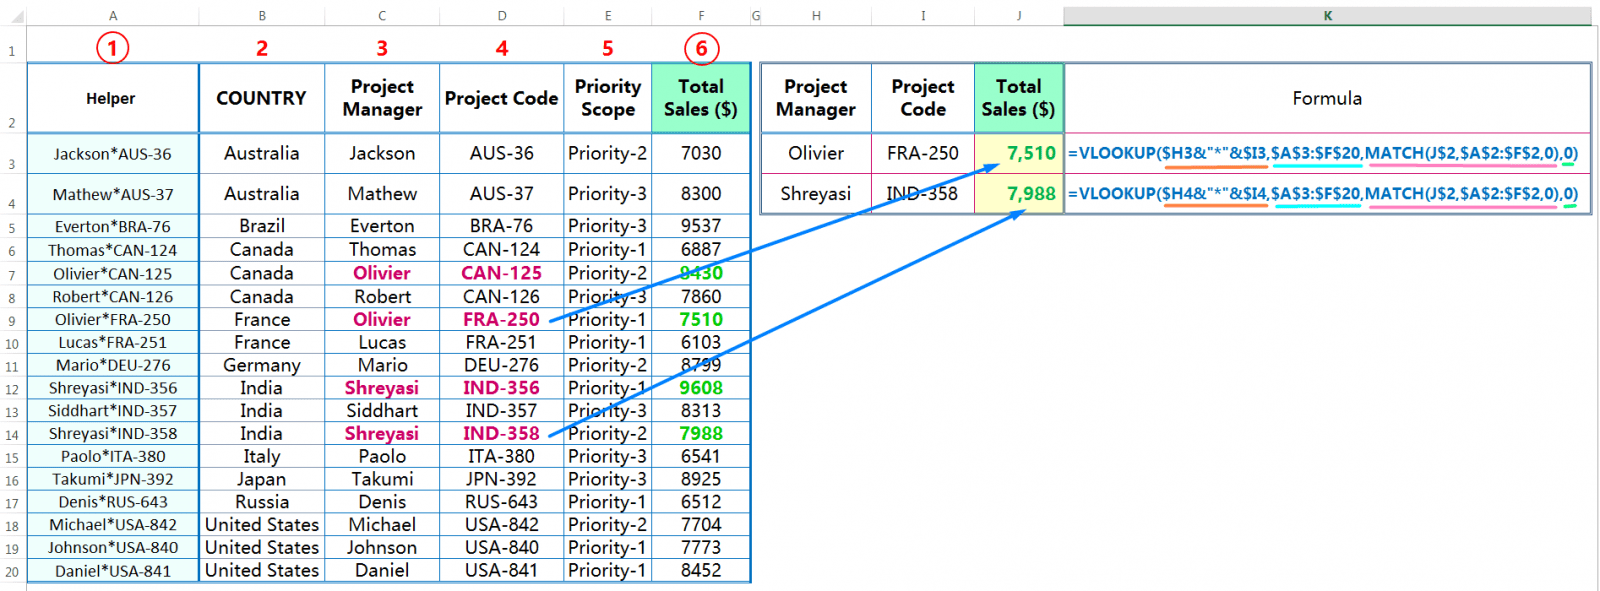 VLOOKUP Multiple Criteria in Excel with VLOOKUP, CONCATENATE & MATCH functions (2-D Lookup)